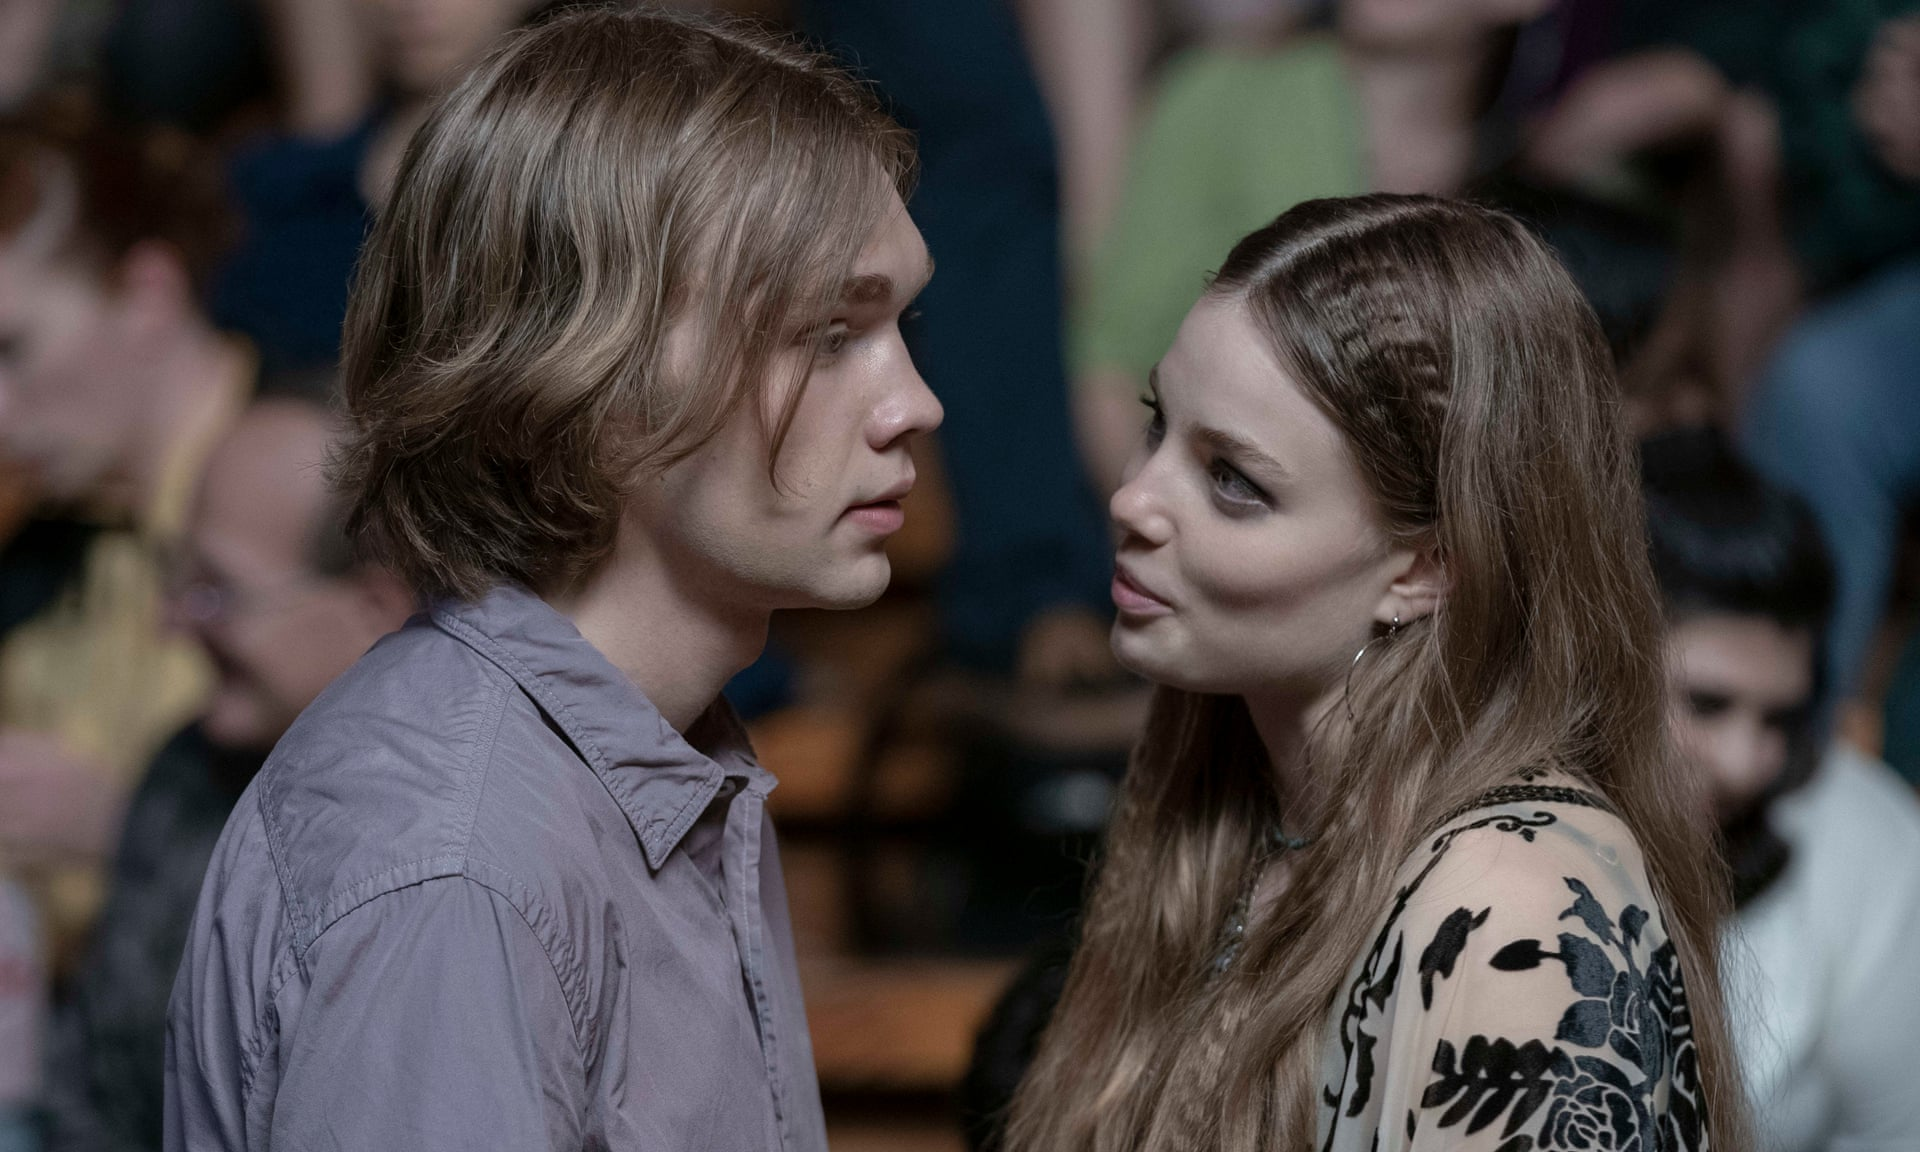 Looking for Alaska review – is this Dawson's Creek throwback too wholesome for Gen Z?